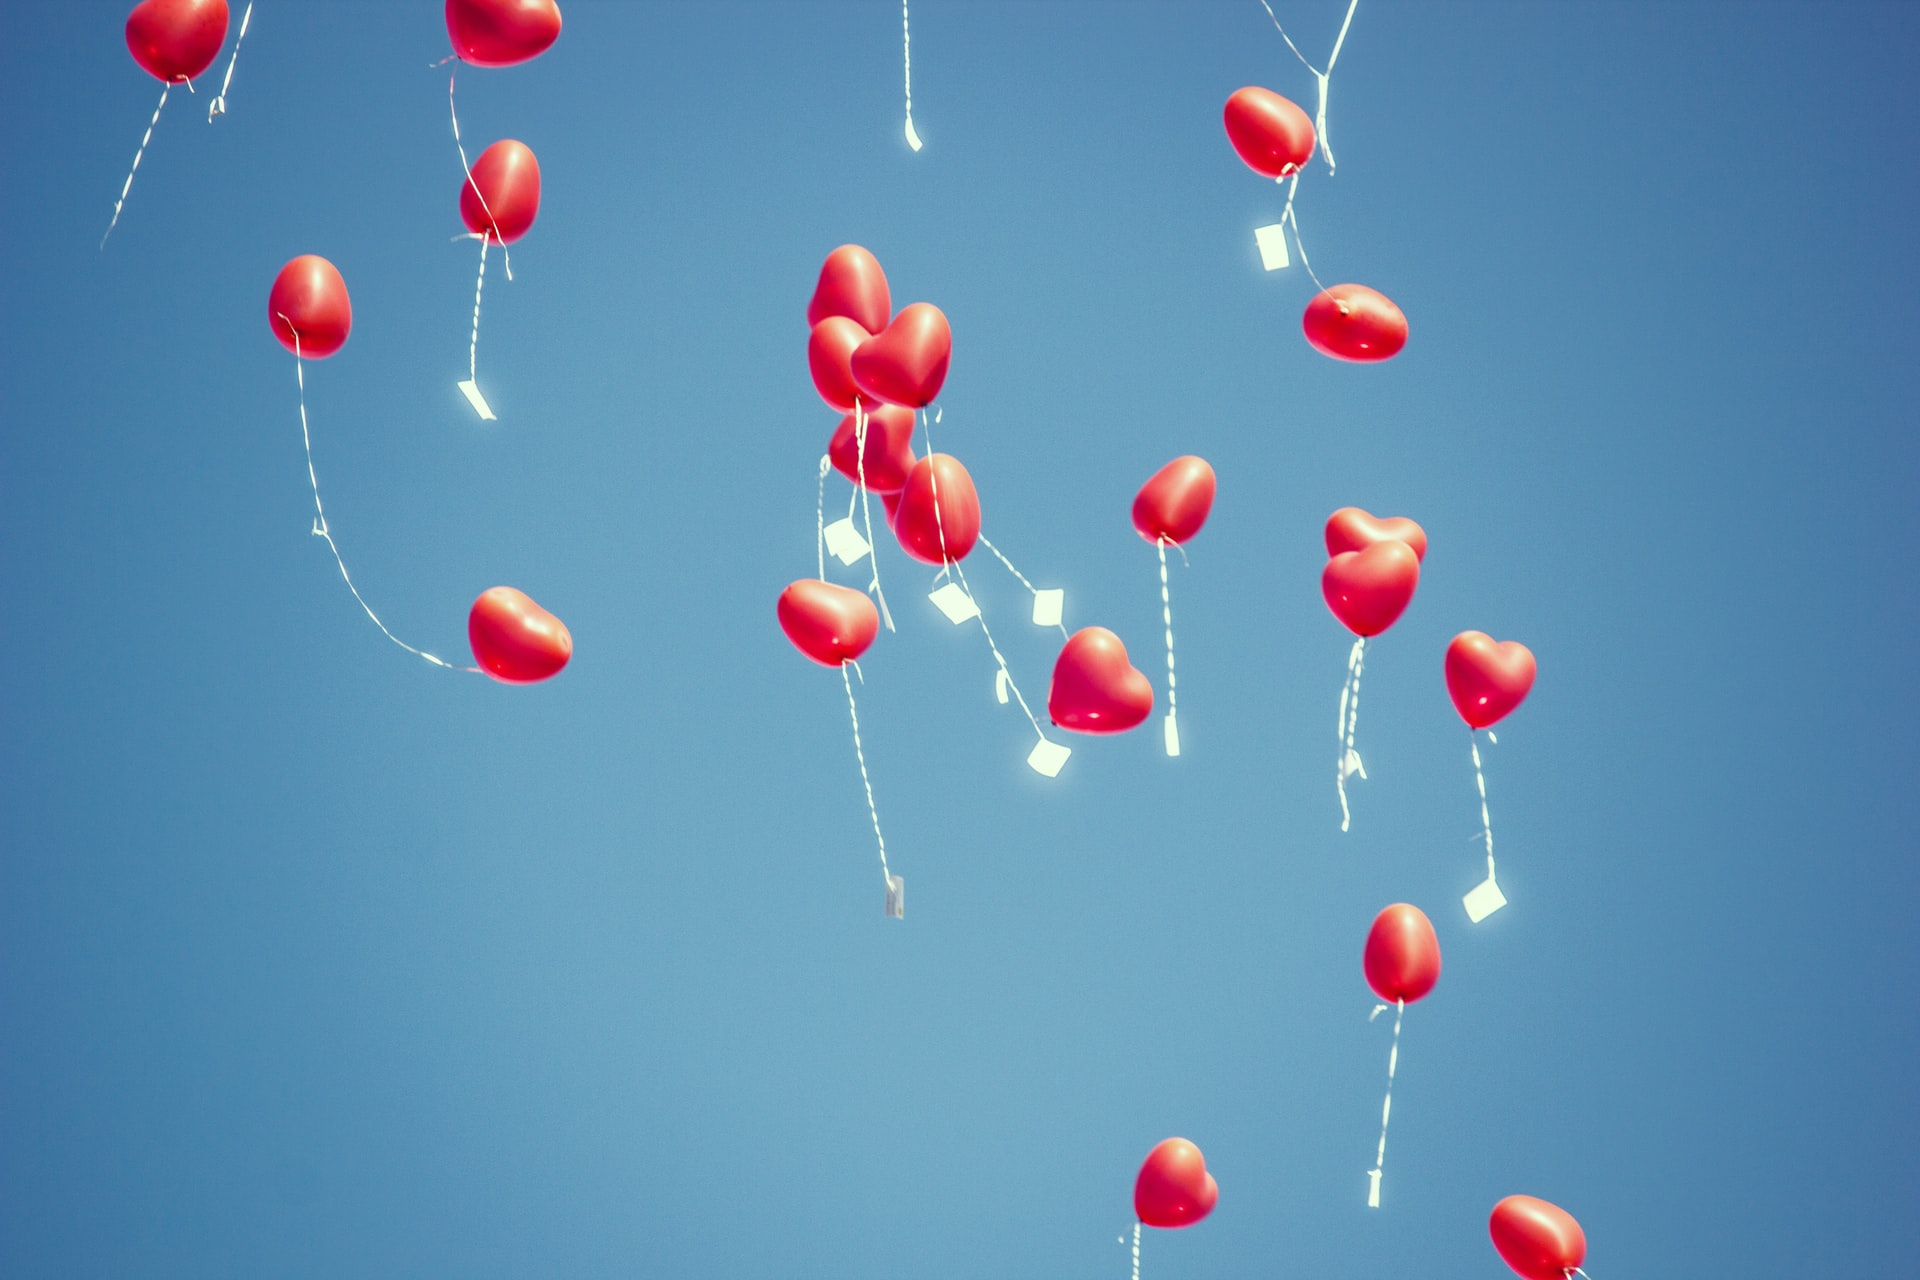 red heart balloons floating in the sky